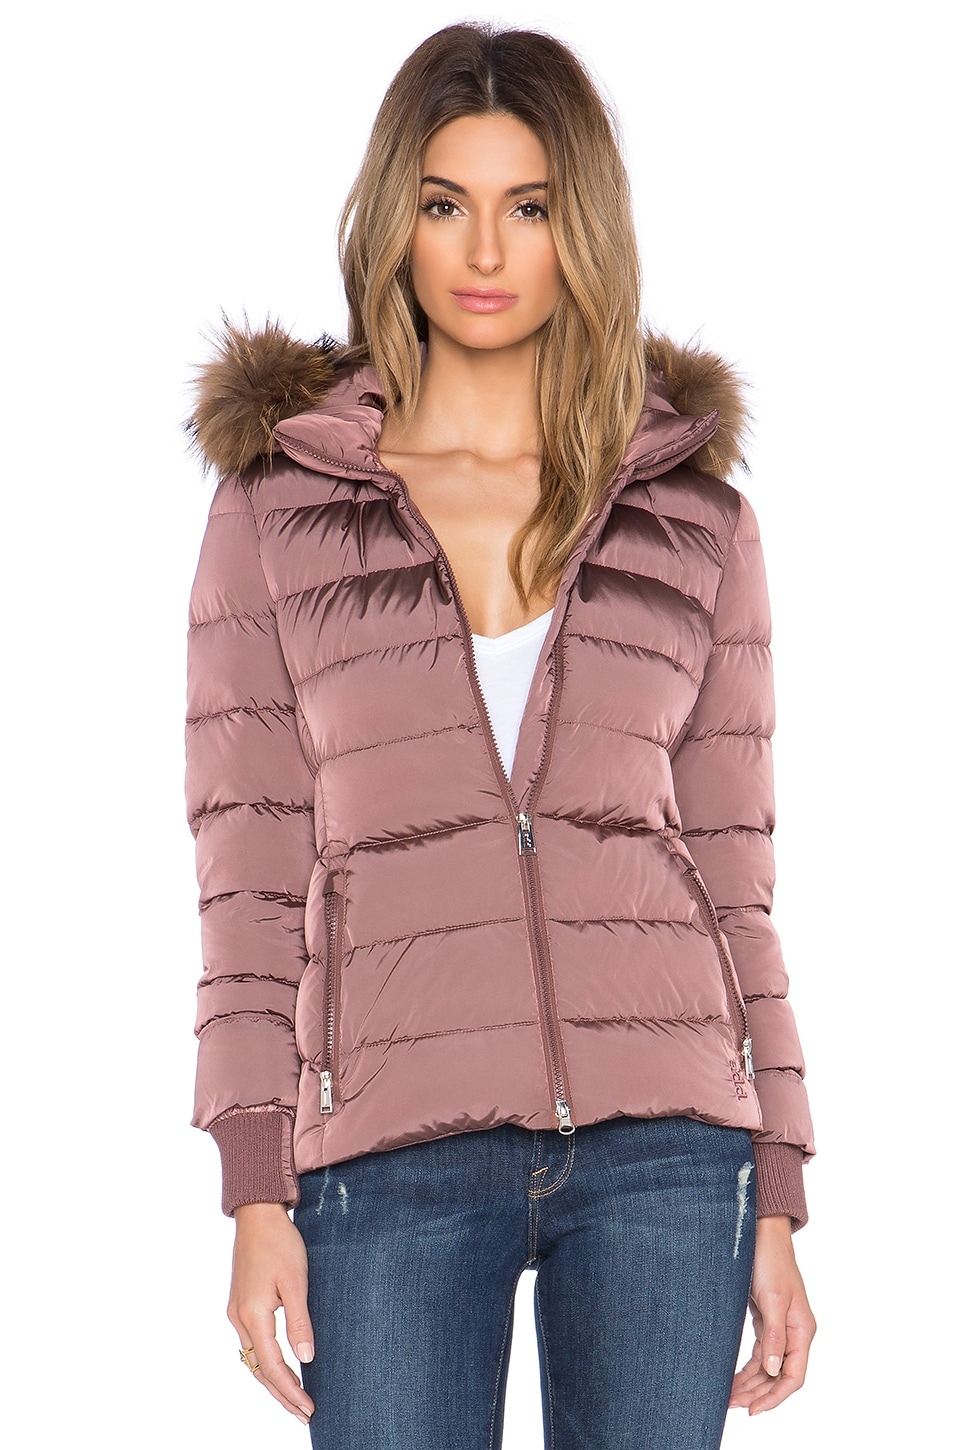 ADD Down Jacket with Raccoon Fur Border in Dusty Rose | REVOLVE